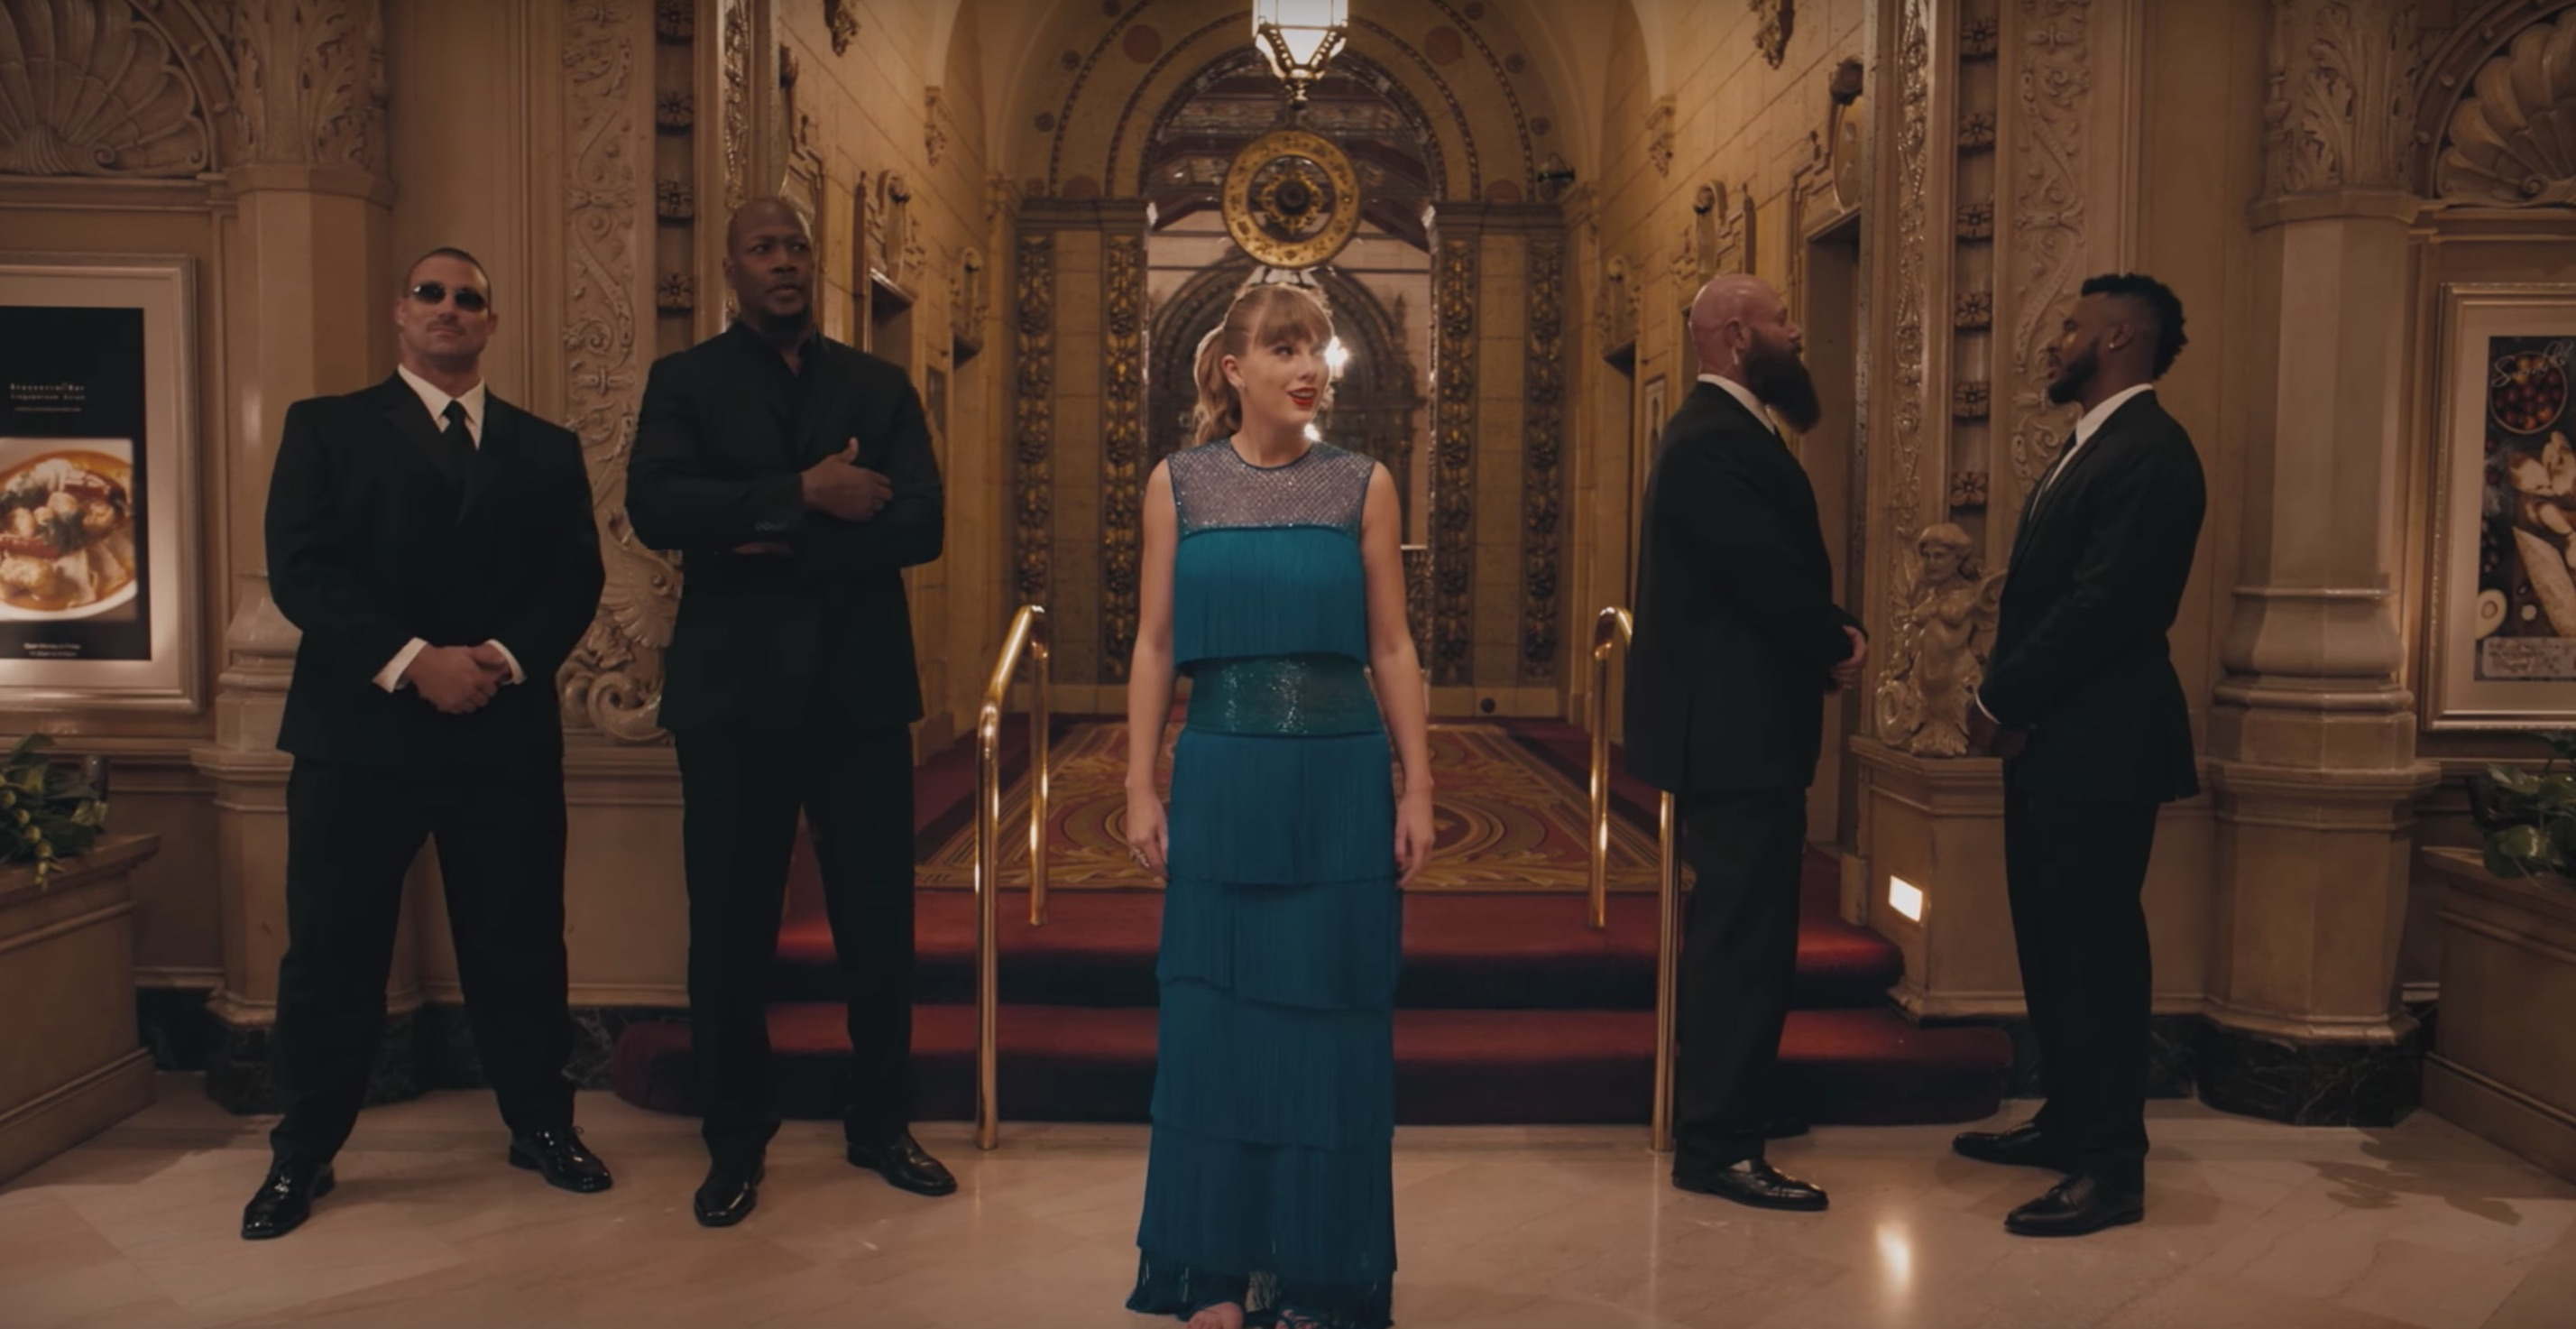 Taylor Swift premieres 'Delicate' music video during iHeartRadio Awards